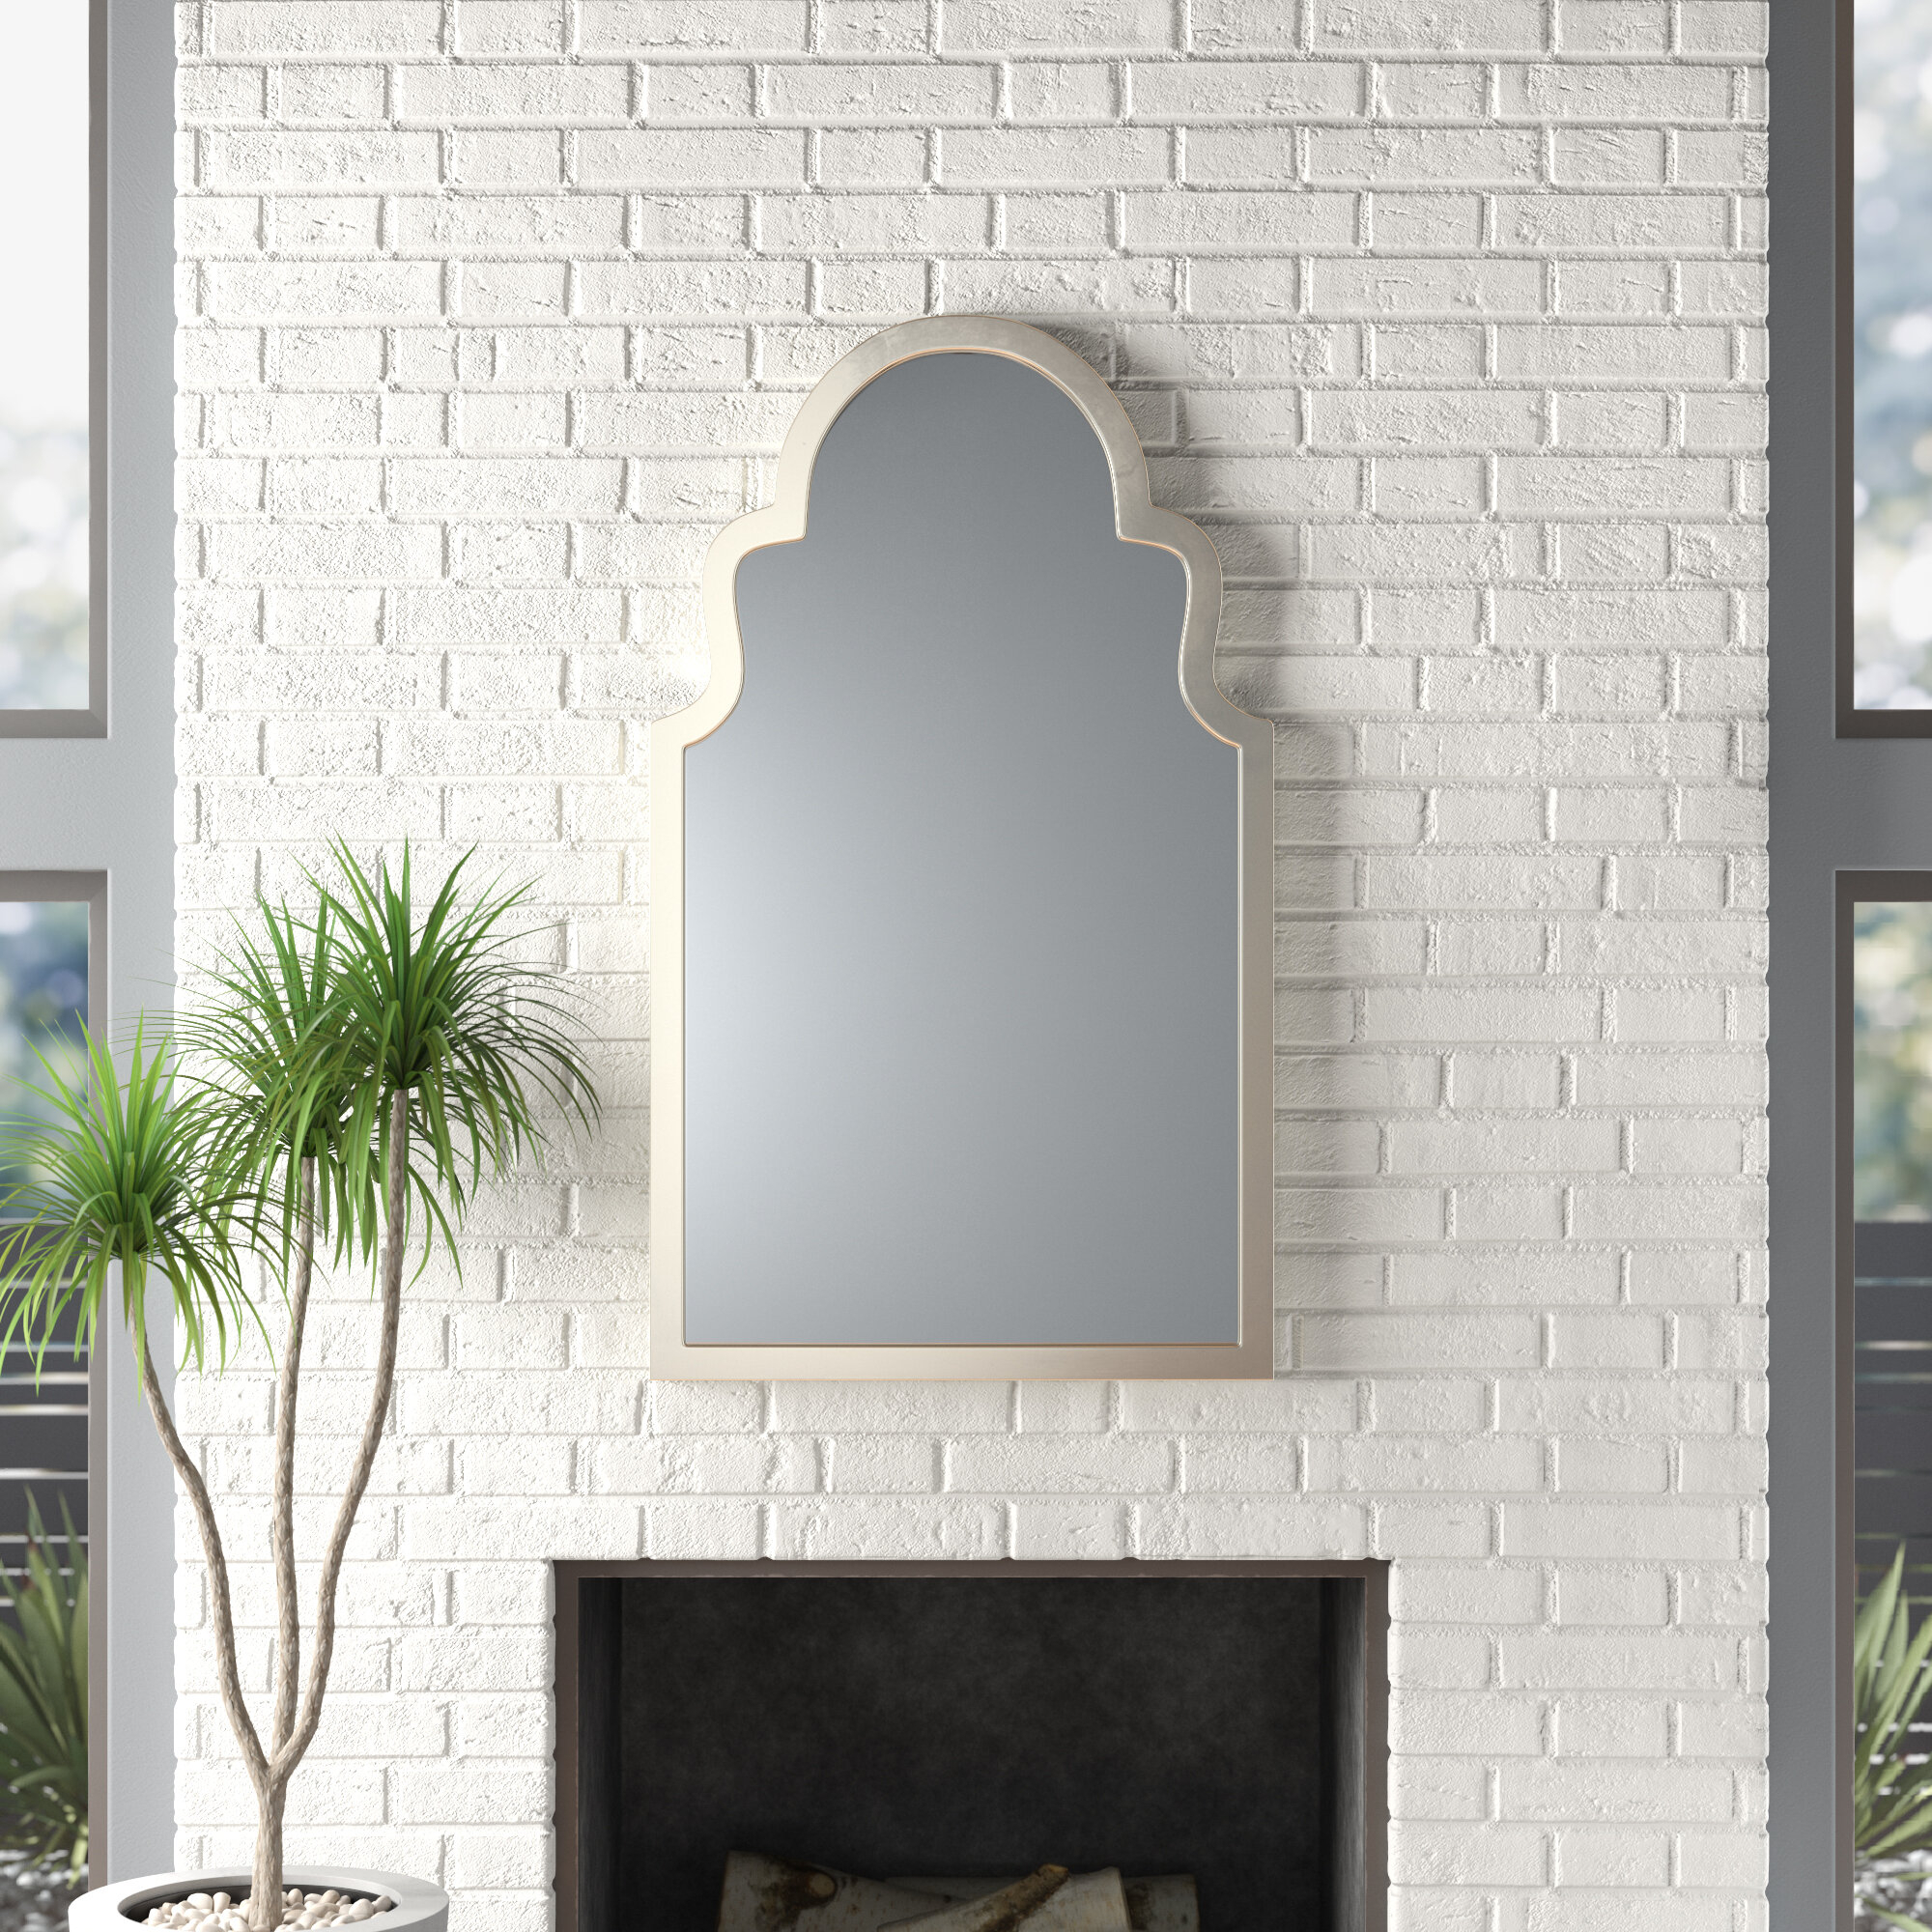 Modern Arch / Crowned Top Wall Mirrors   Allmodern Inside Ekaterina Arch/crowned Top Wall Mirrors (View 23 of 30)